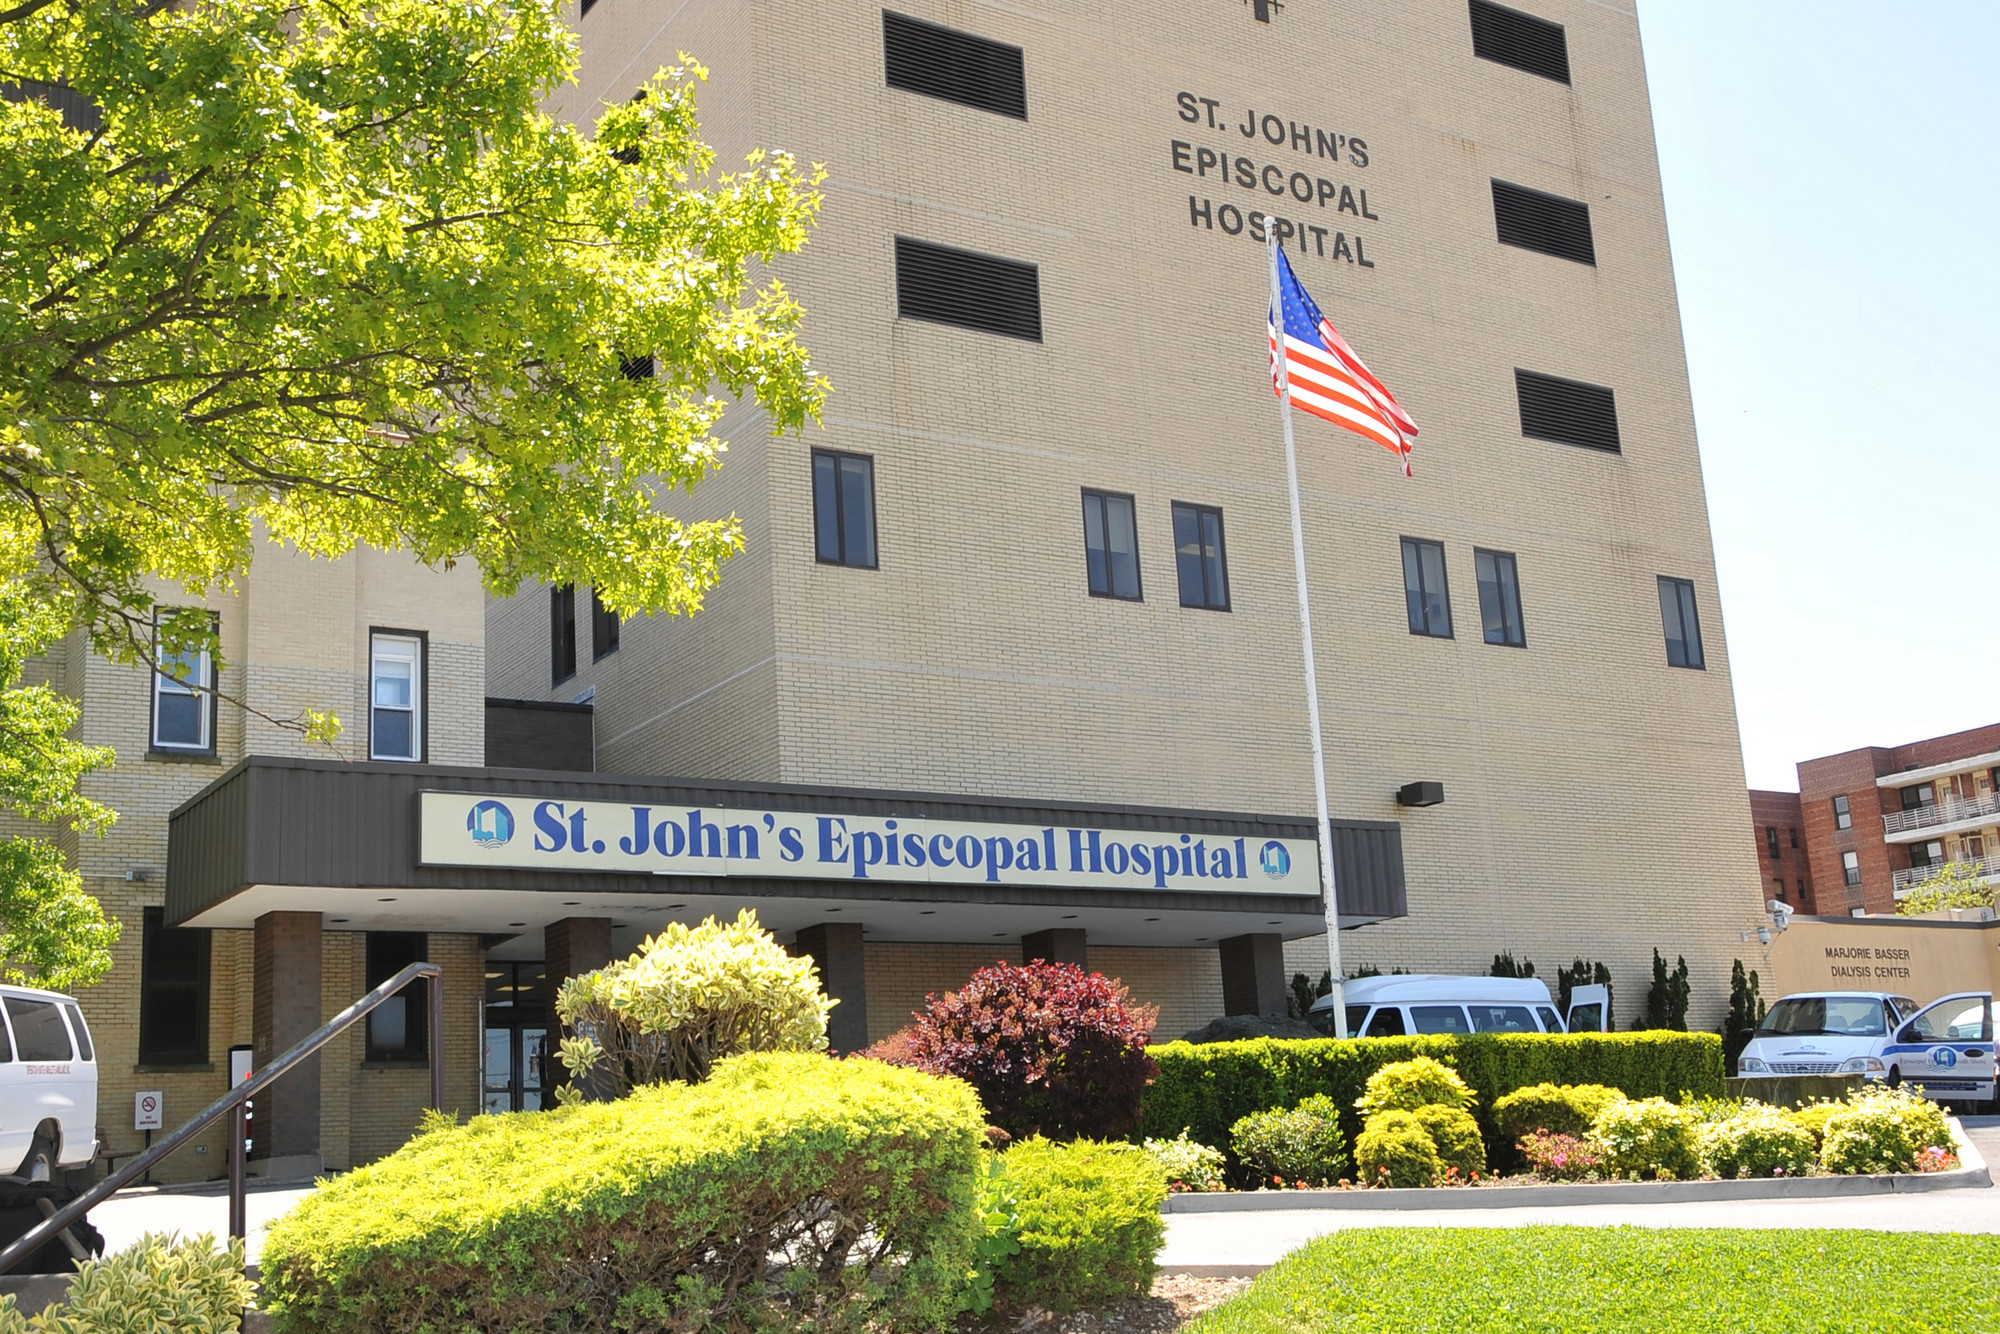 St. John's Episcopal Hospital in Far Rockaway received recognition for its successful implementation of nationally accepted standards for stroke treatment.